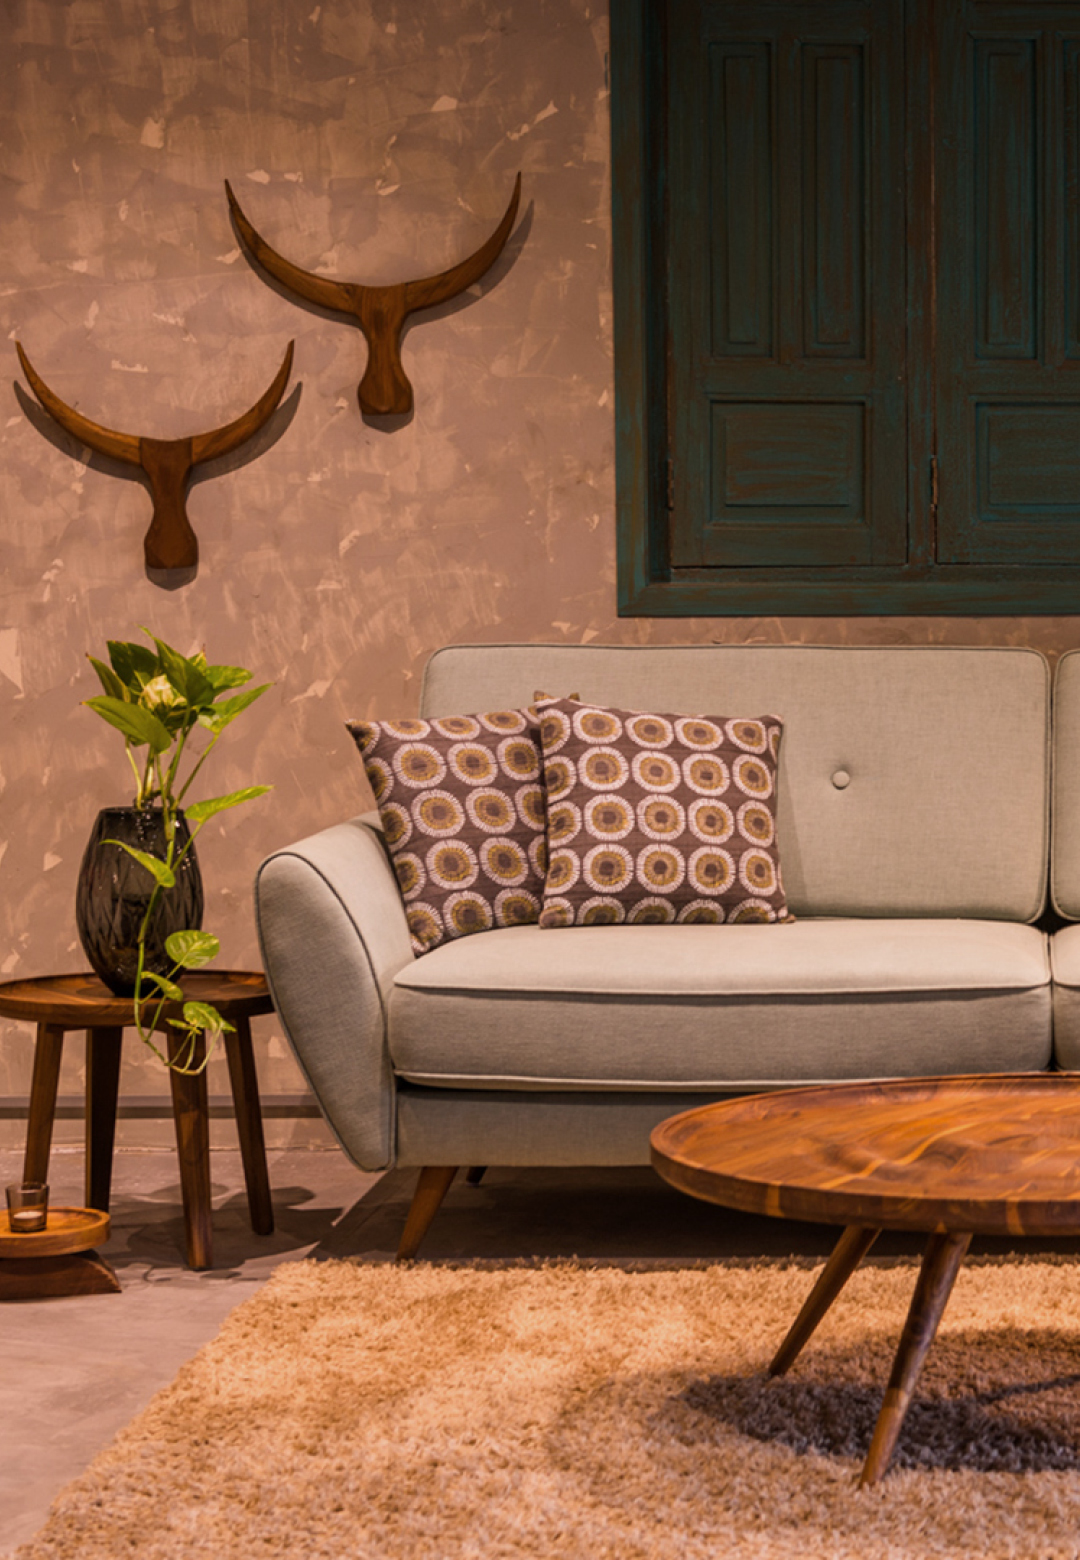 An overview of furniture by Tectona Grandis Furniture | Tectona Grandis Furniture | India | Dhruvkant Amin | STIRworld